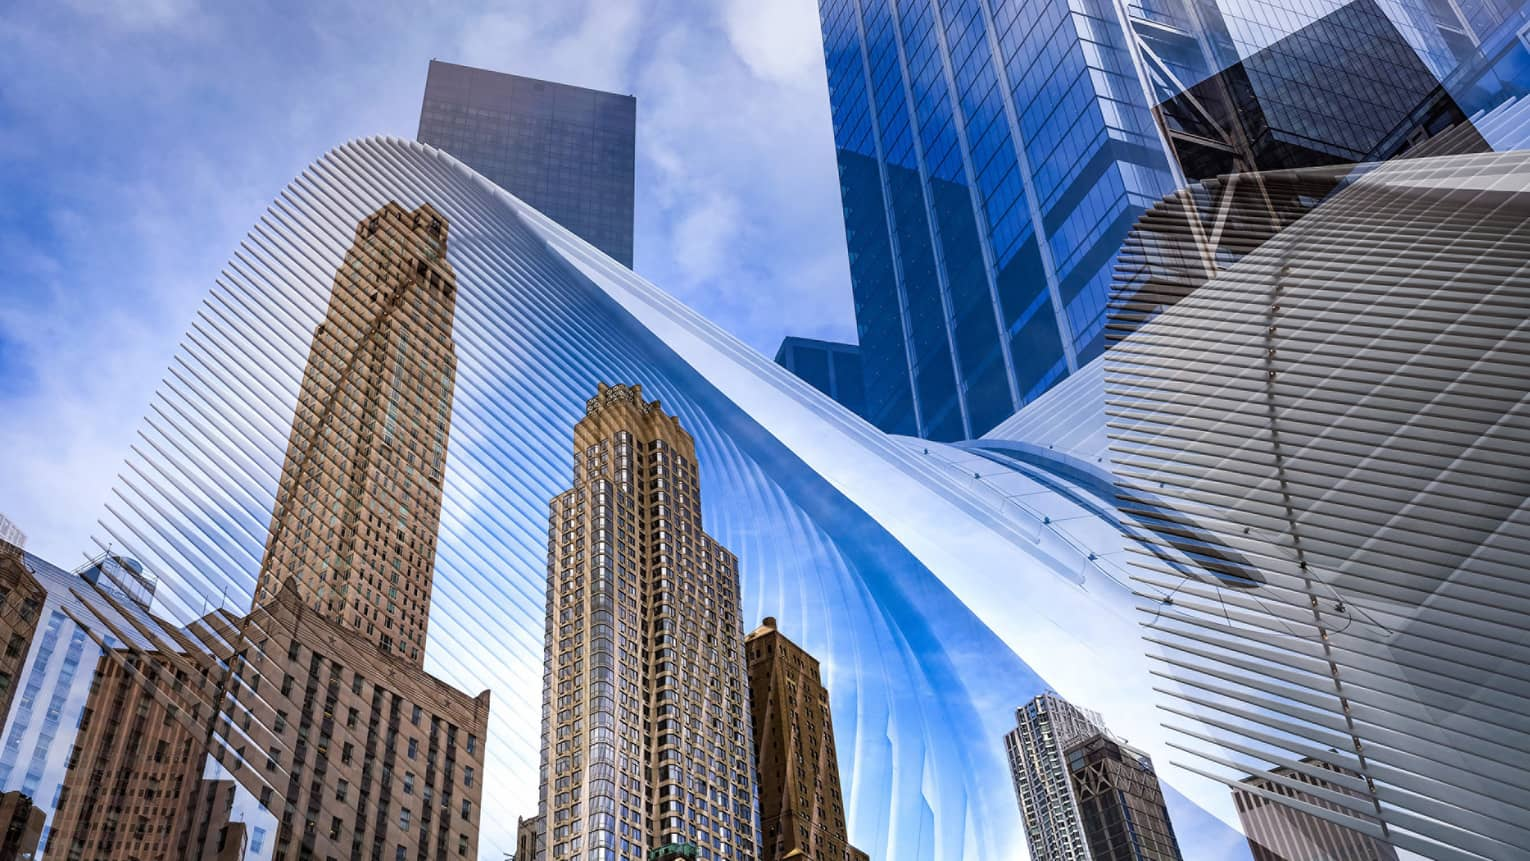 New York City skyline view behind architectural details of The Oculus train station terminal